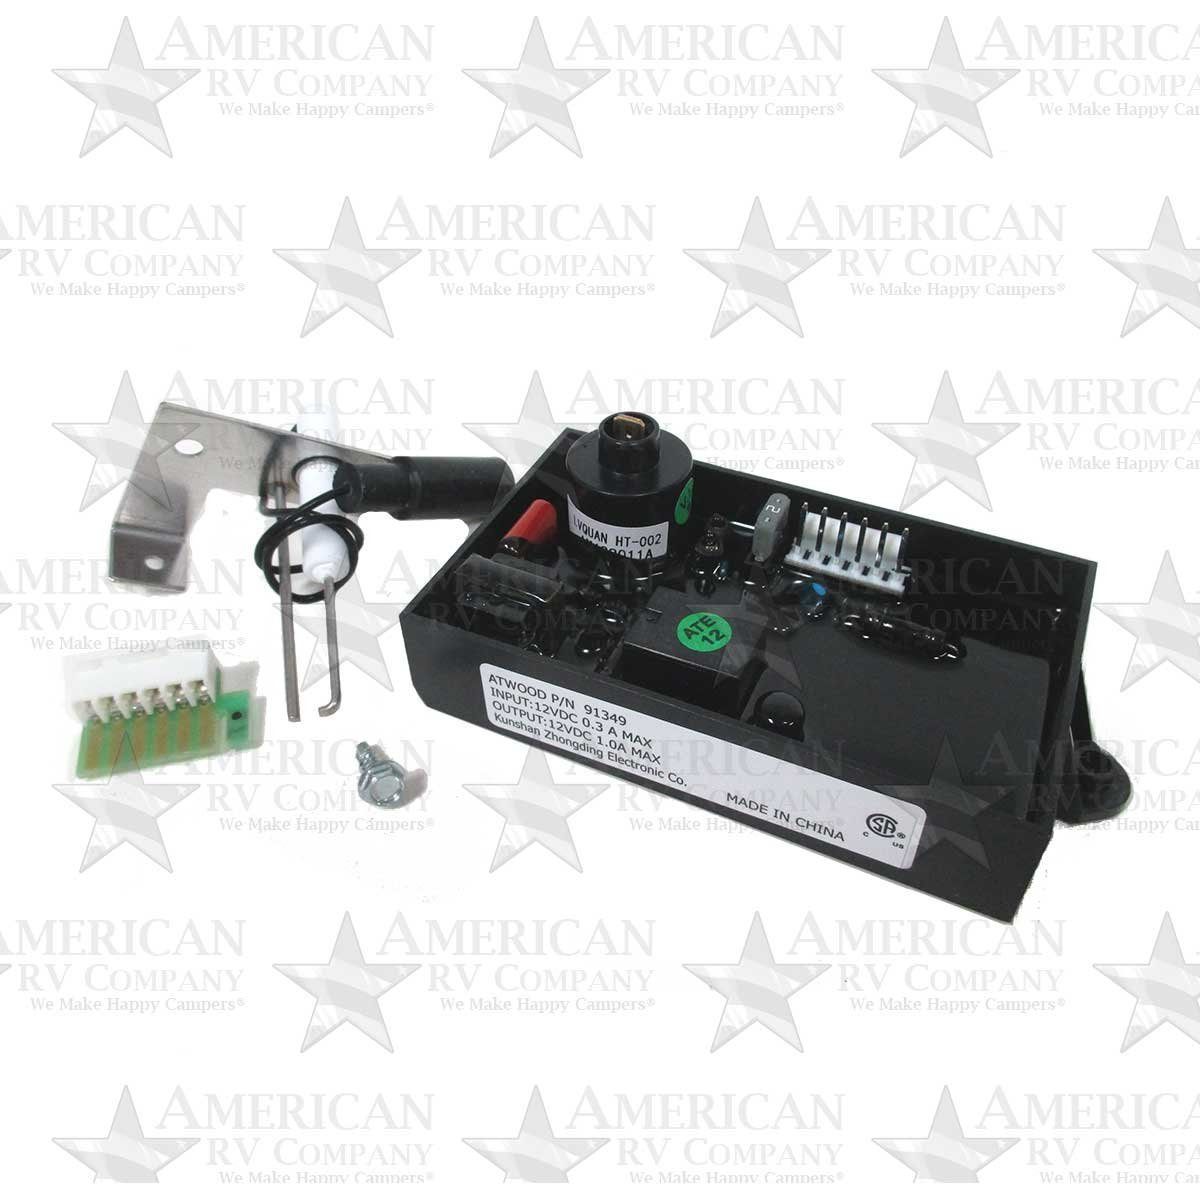 Atwood 91363 OEM RV Appliance Universal Ignition Control Kit - For Use w/ Older Electric Water Heaters - Replacement Part